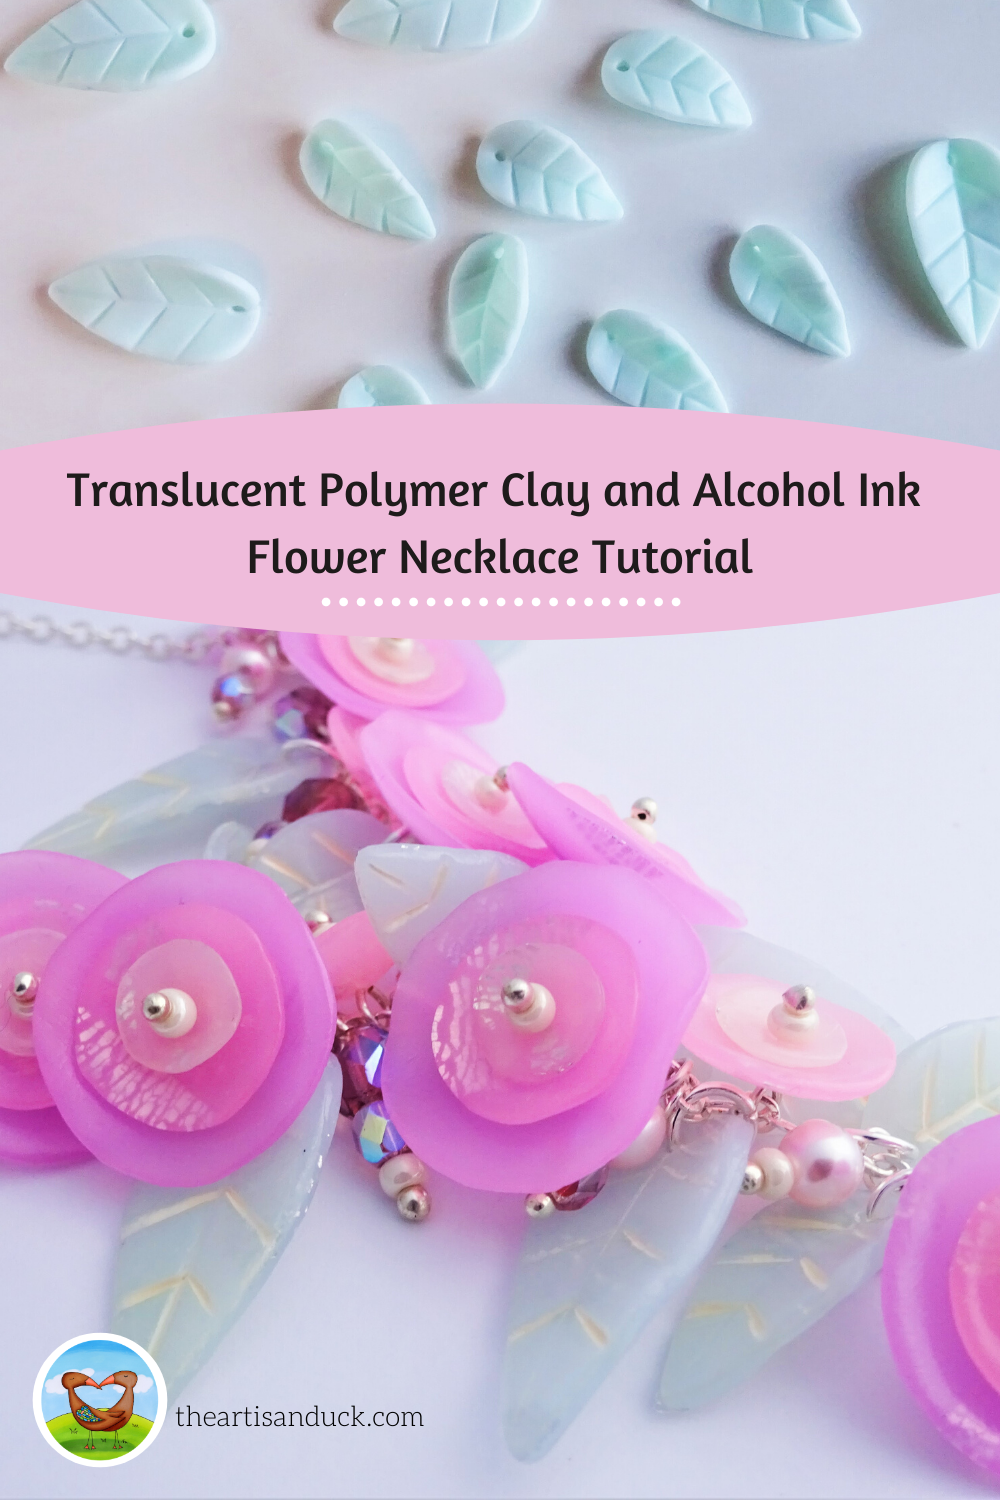 Translucent polymer clay and alcohol ink flower necklace tutorial